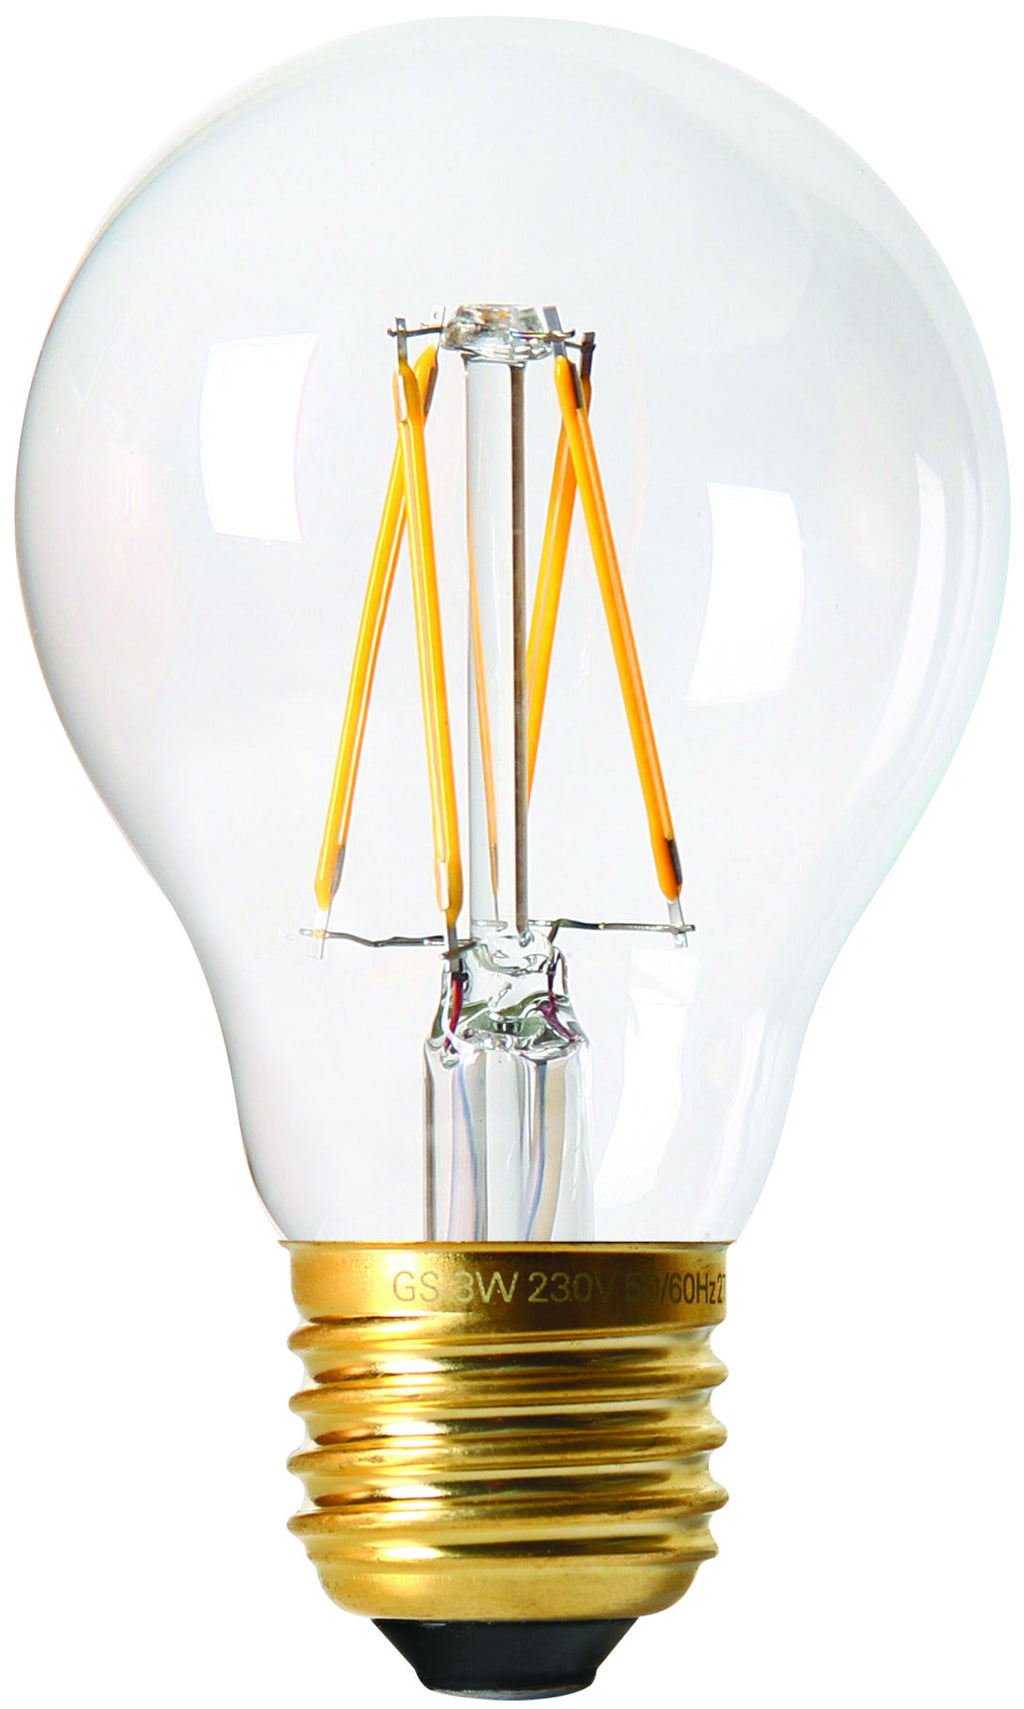 28631 - Standard A60 Filament LED 6W E27 2700K 806Lm Cl.